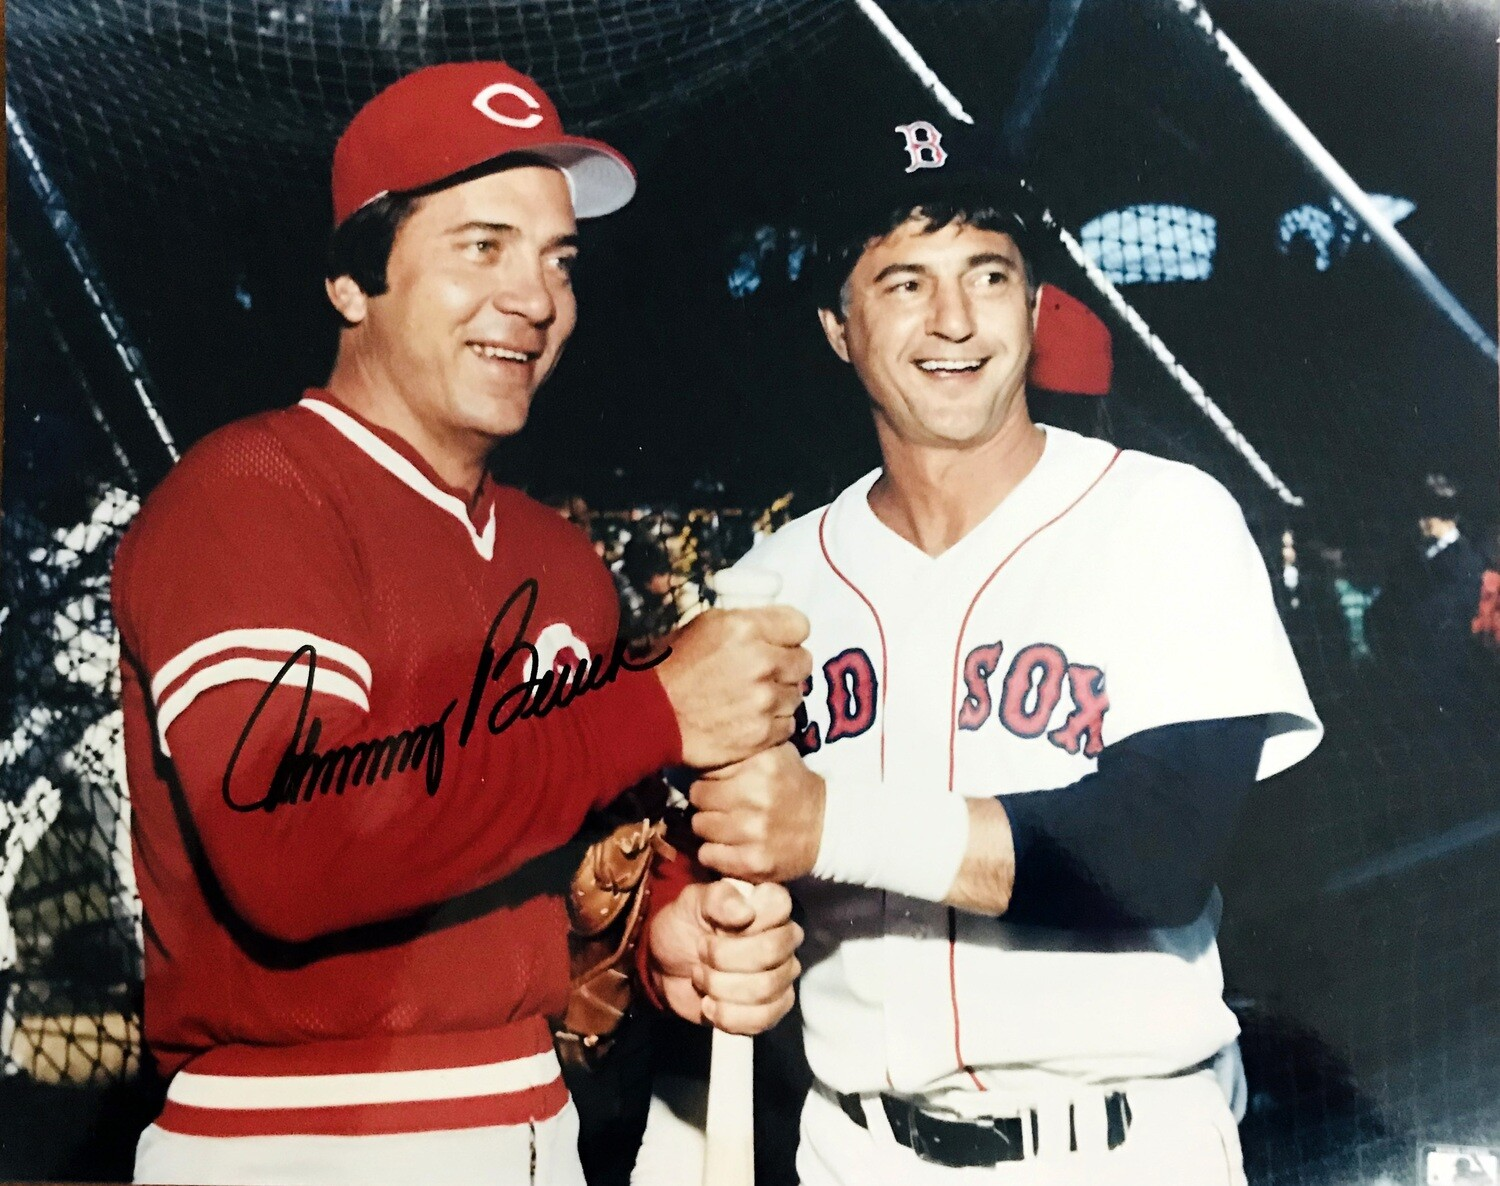 Johnny Bench & Carl Yastrzemski Cincinnati Reds Boston Red Sox MLB 8x10 Photo with Johnny Bench Autograph